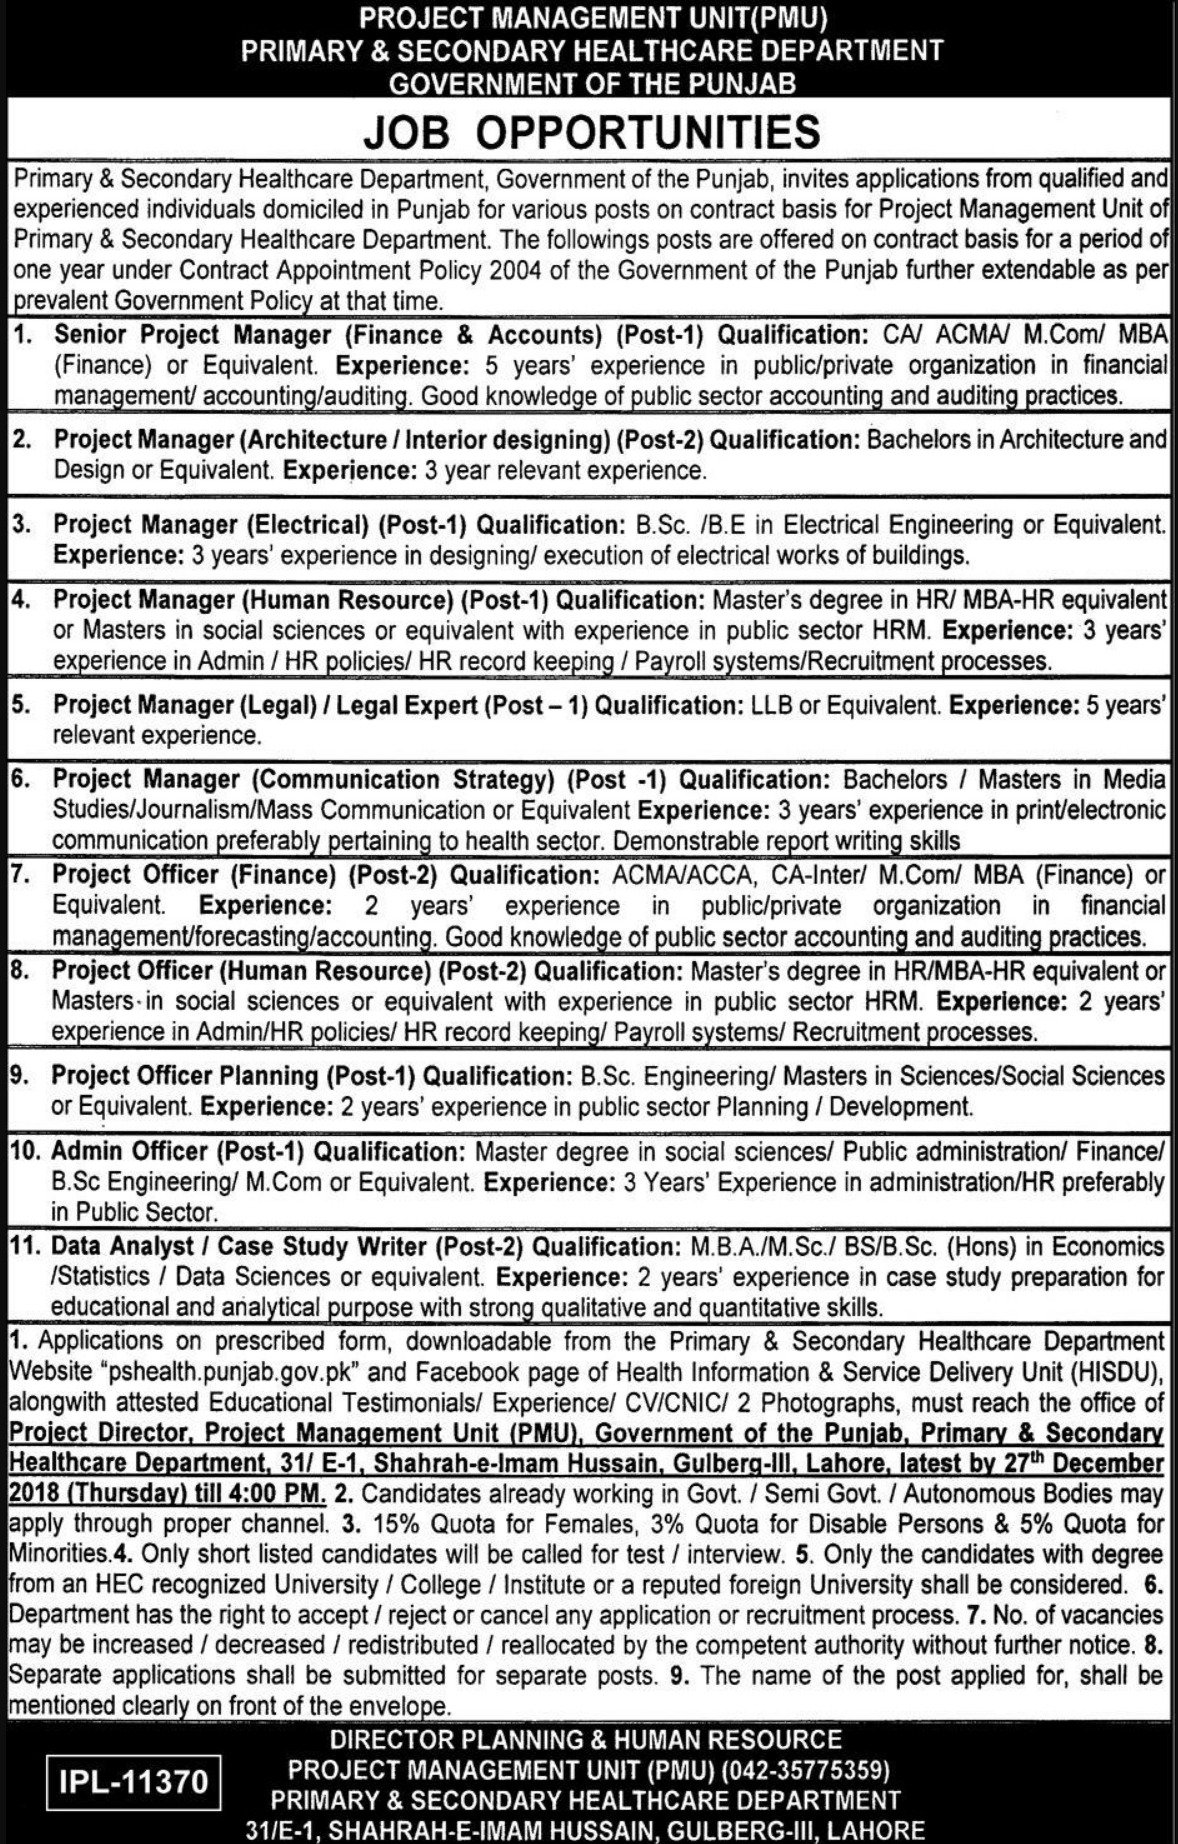 Primary & Secondary Healthcare Department Punjab Jobs 2018